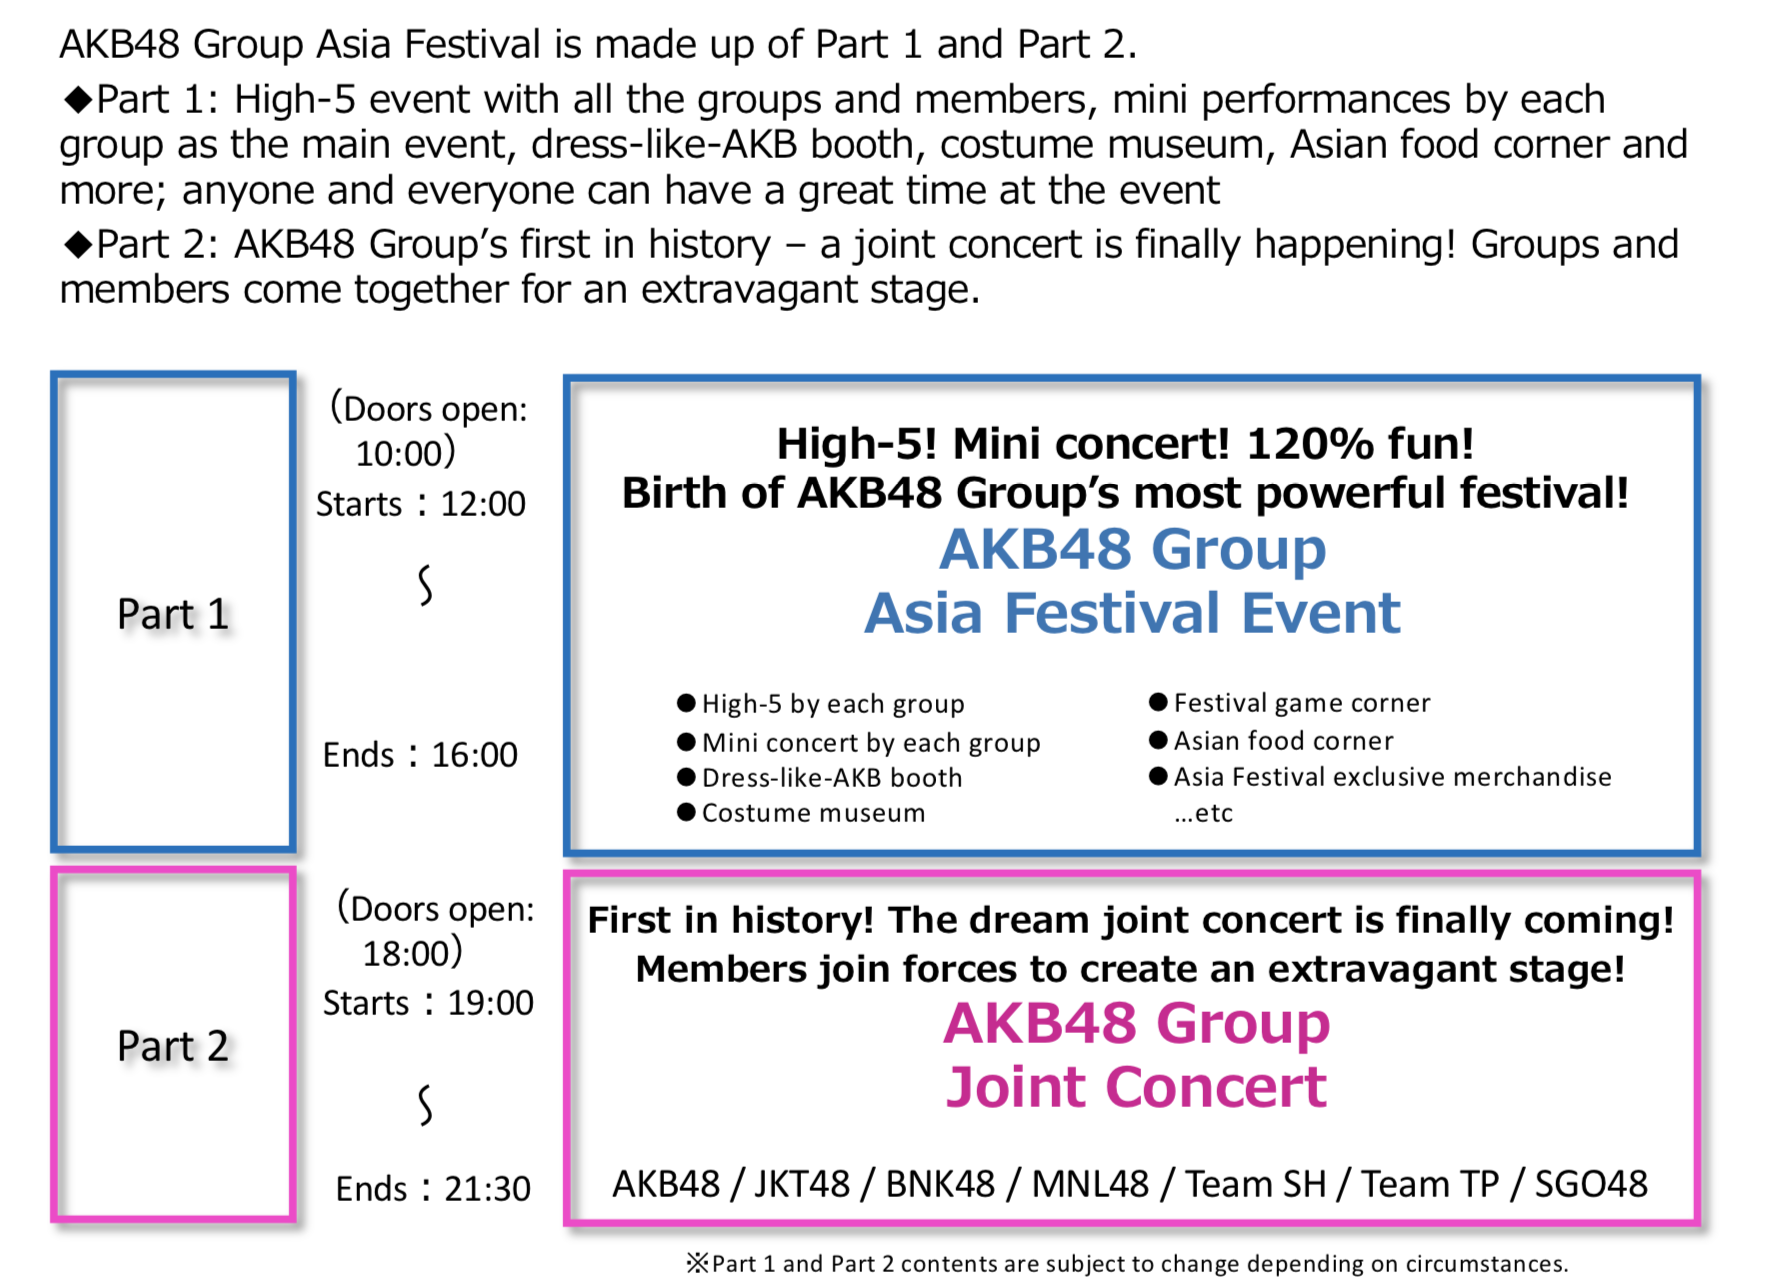 AKB48 Group Asia Festival 2019 in Bangkok Presented by